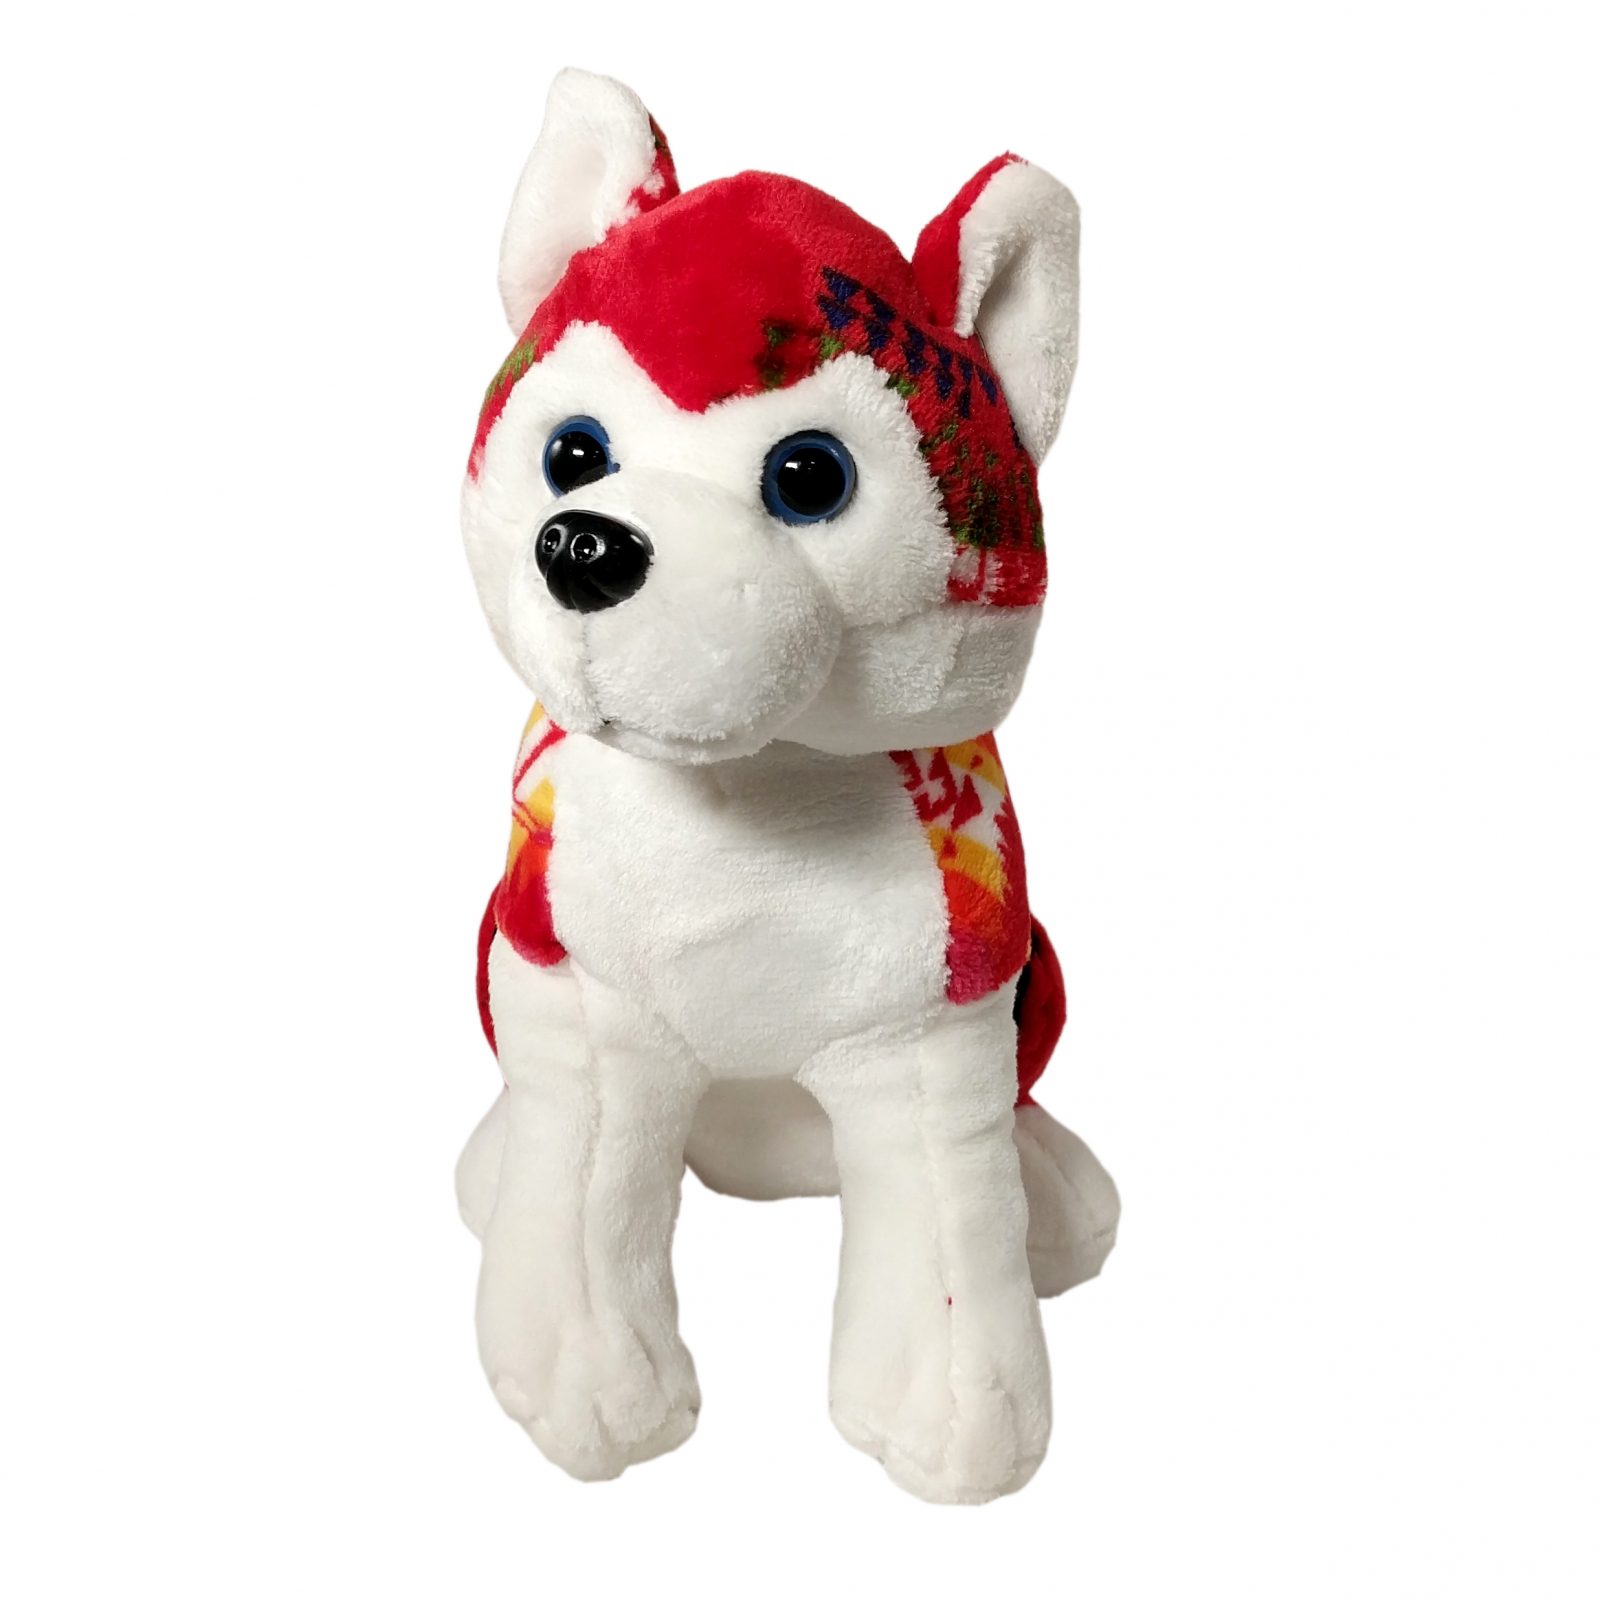 TychoTyke Stuffed Animal Husky Plush Toy Southwest - Red